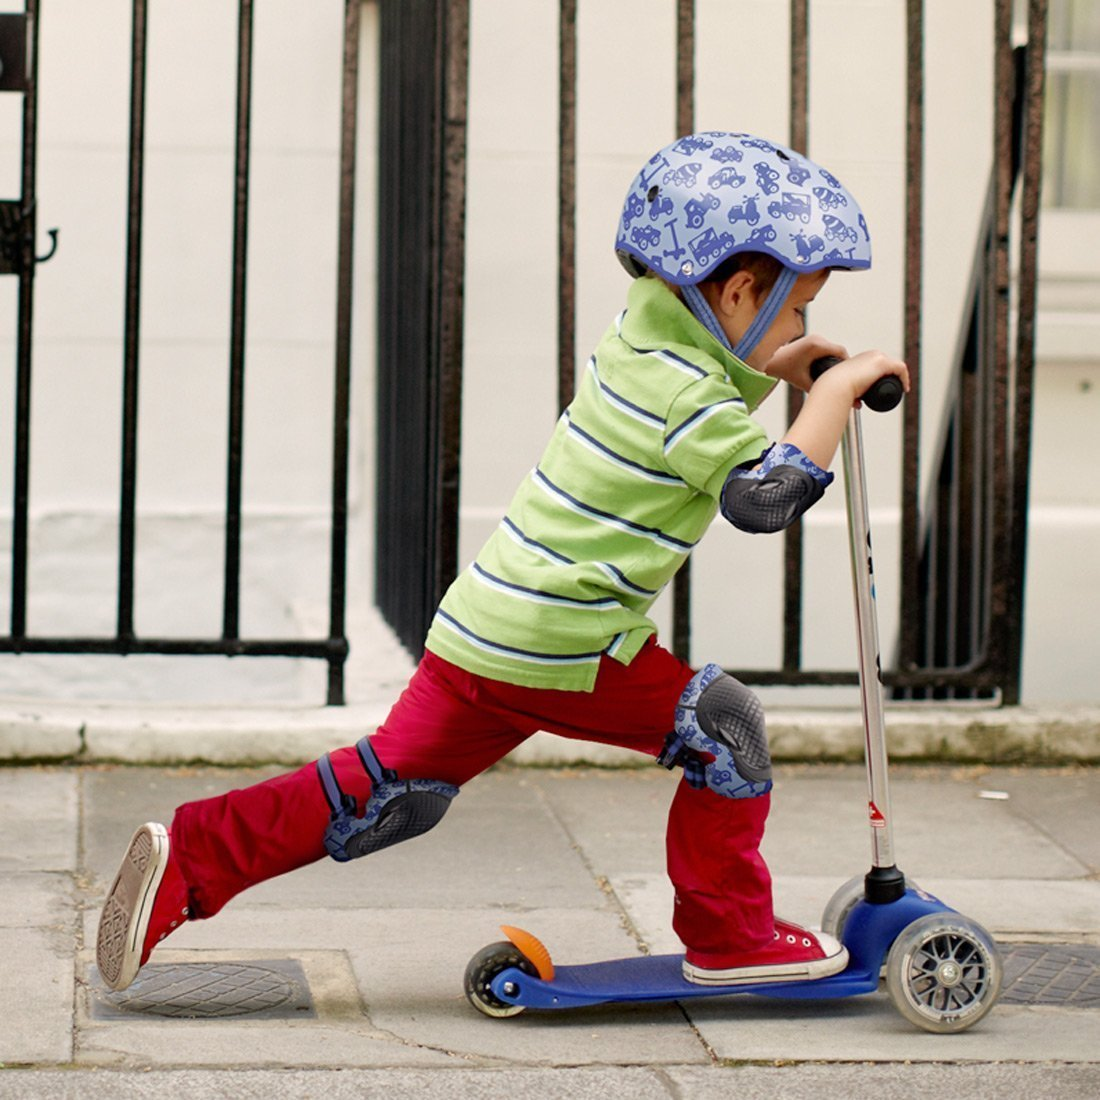 Top 10 Best Scooters for Kids 2018 - Safe, Fun, Reliable ...